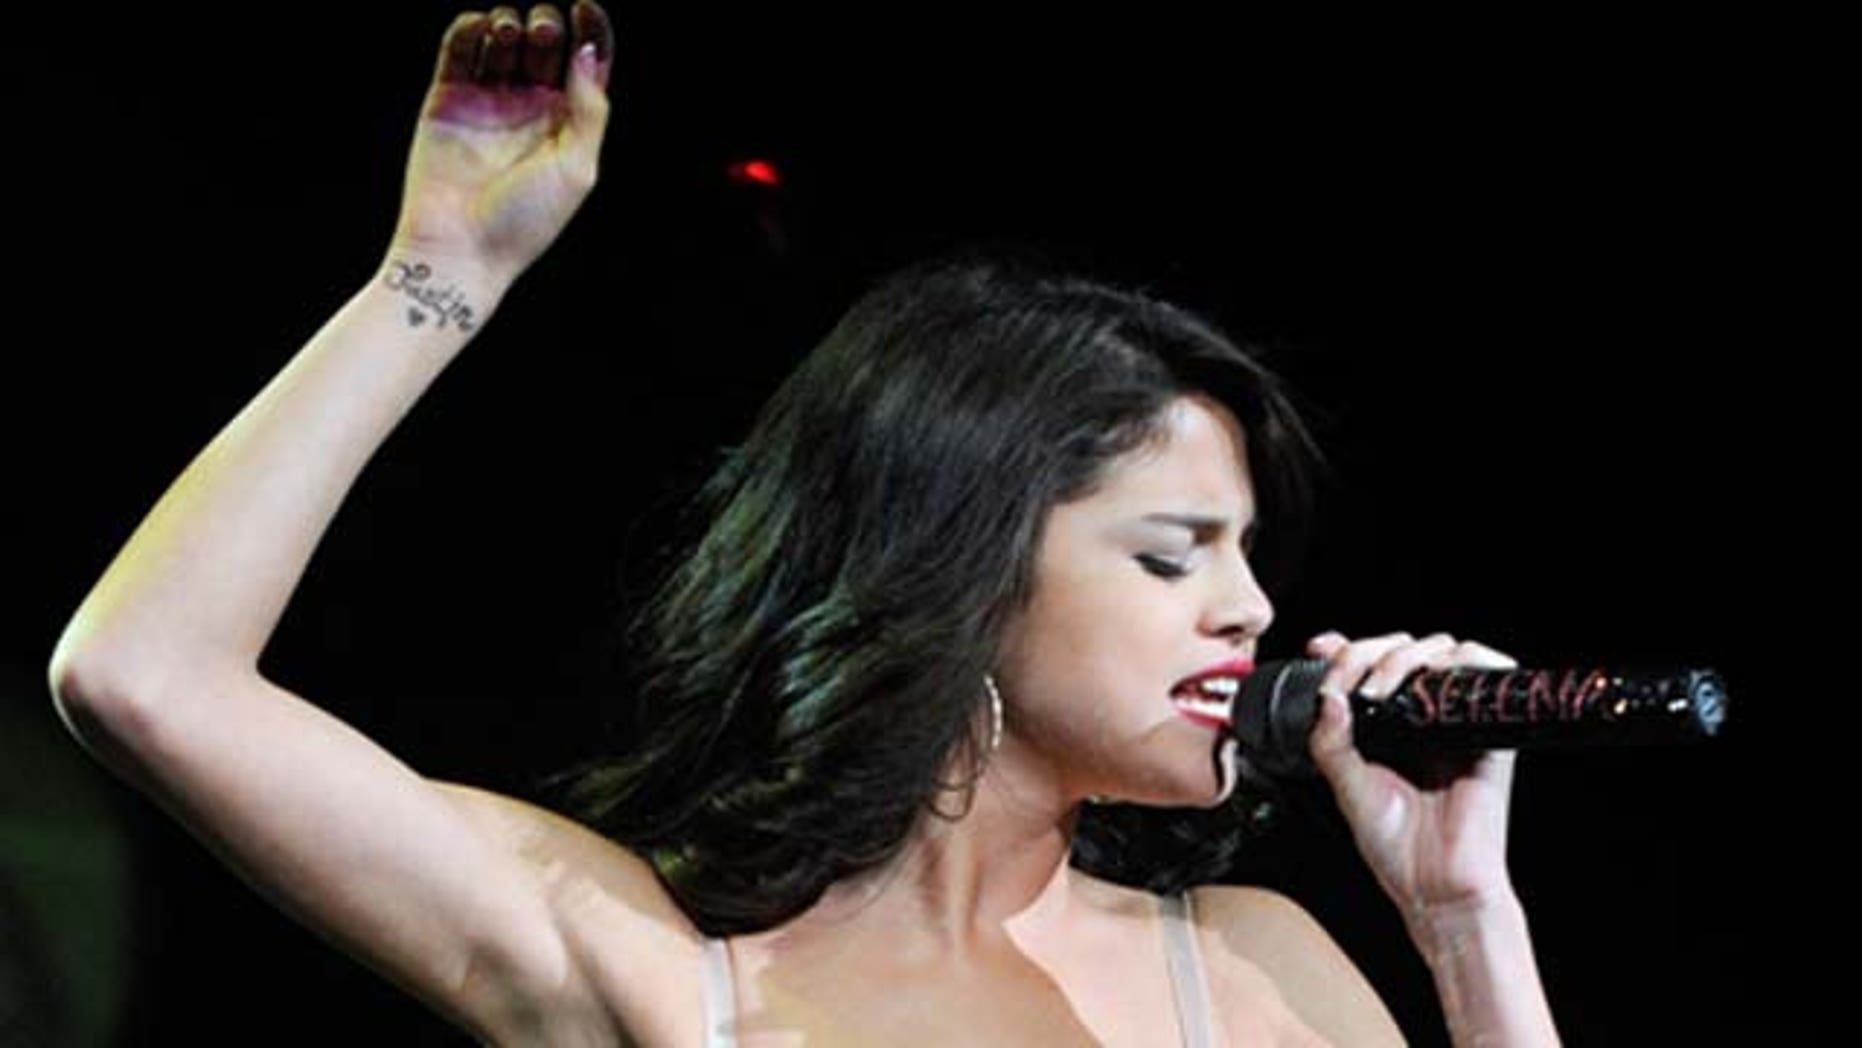 Singer Selena Gomez performs at the Mandalay Bay Events Center September 10, 2011 in Las Vegas, Nevada.